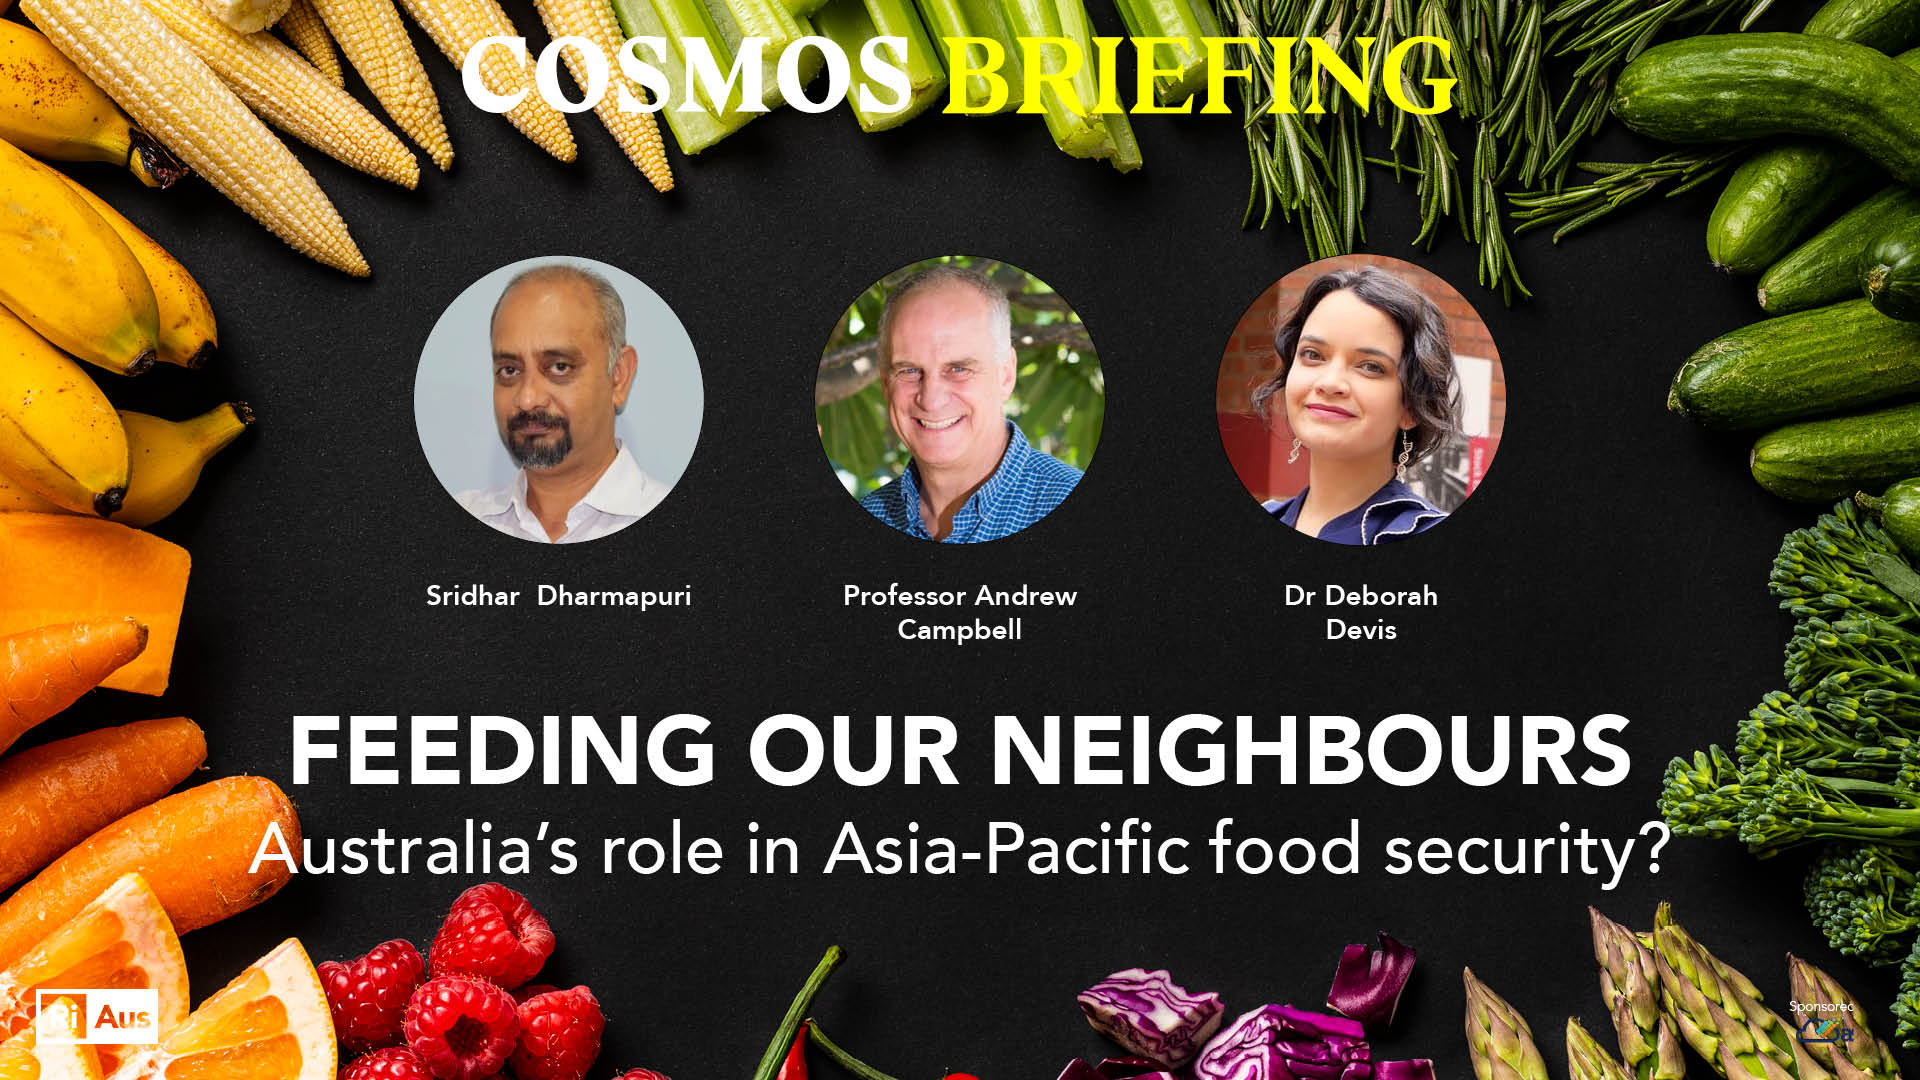 How can we achieve food security in the asia-pacific region?